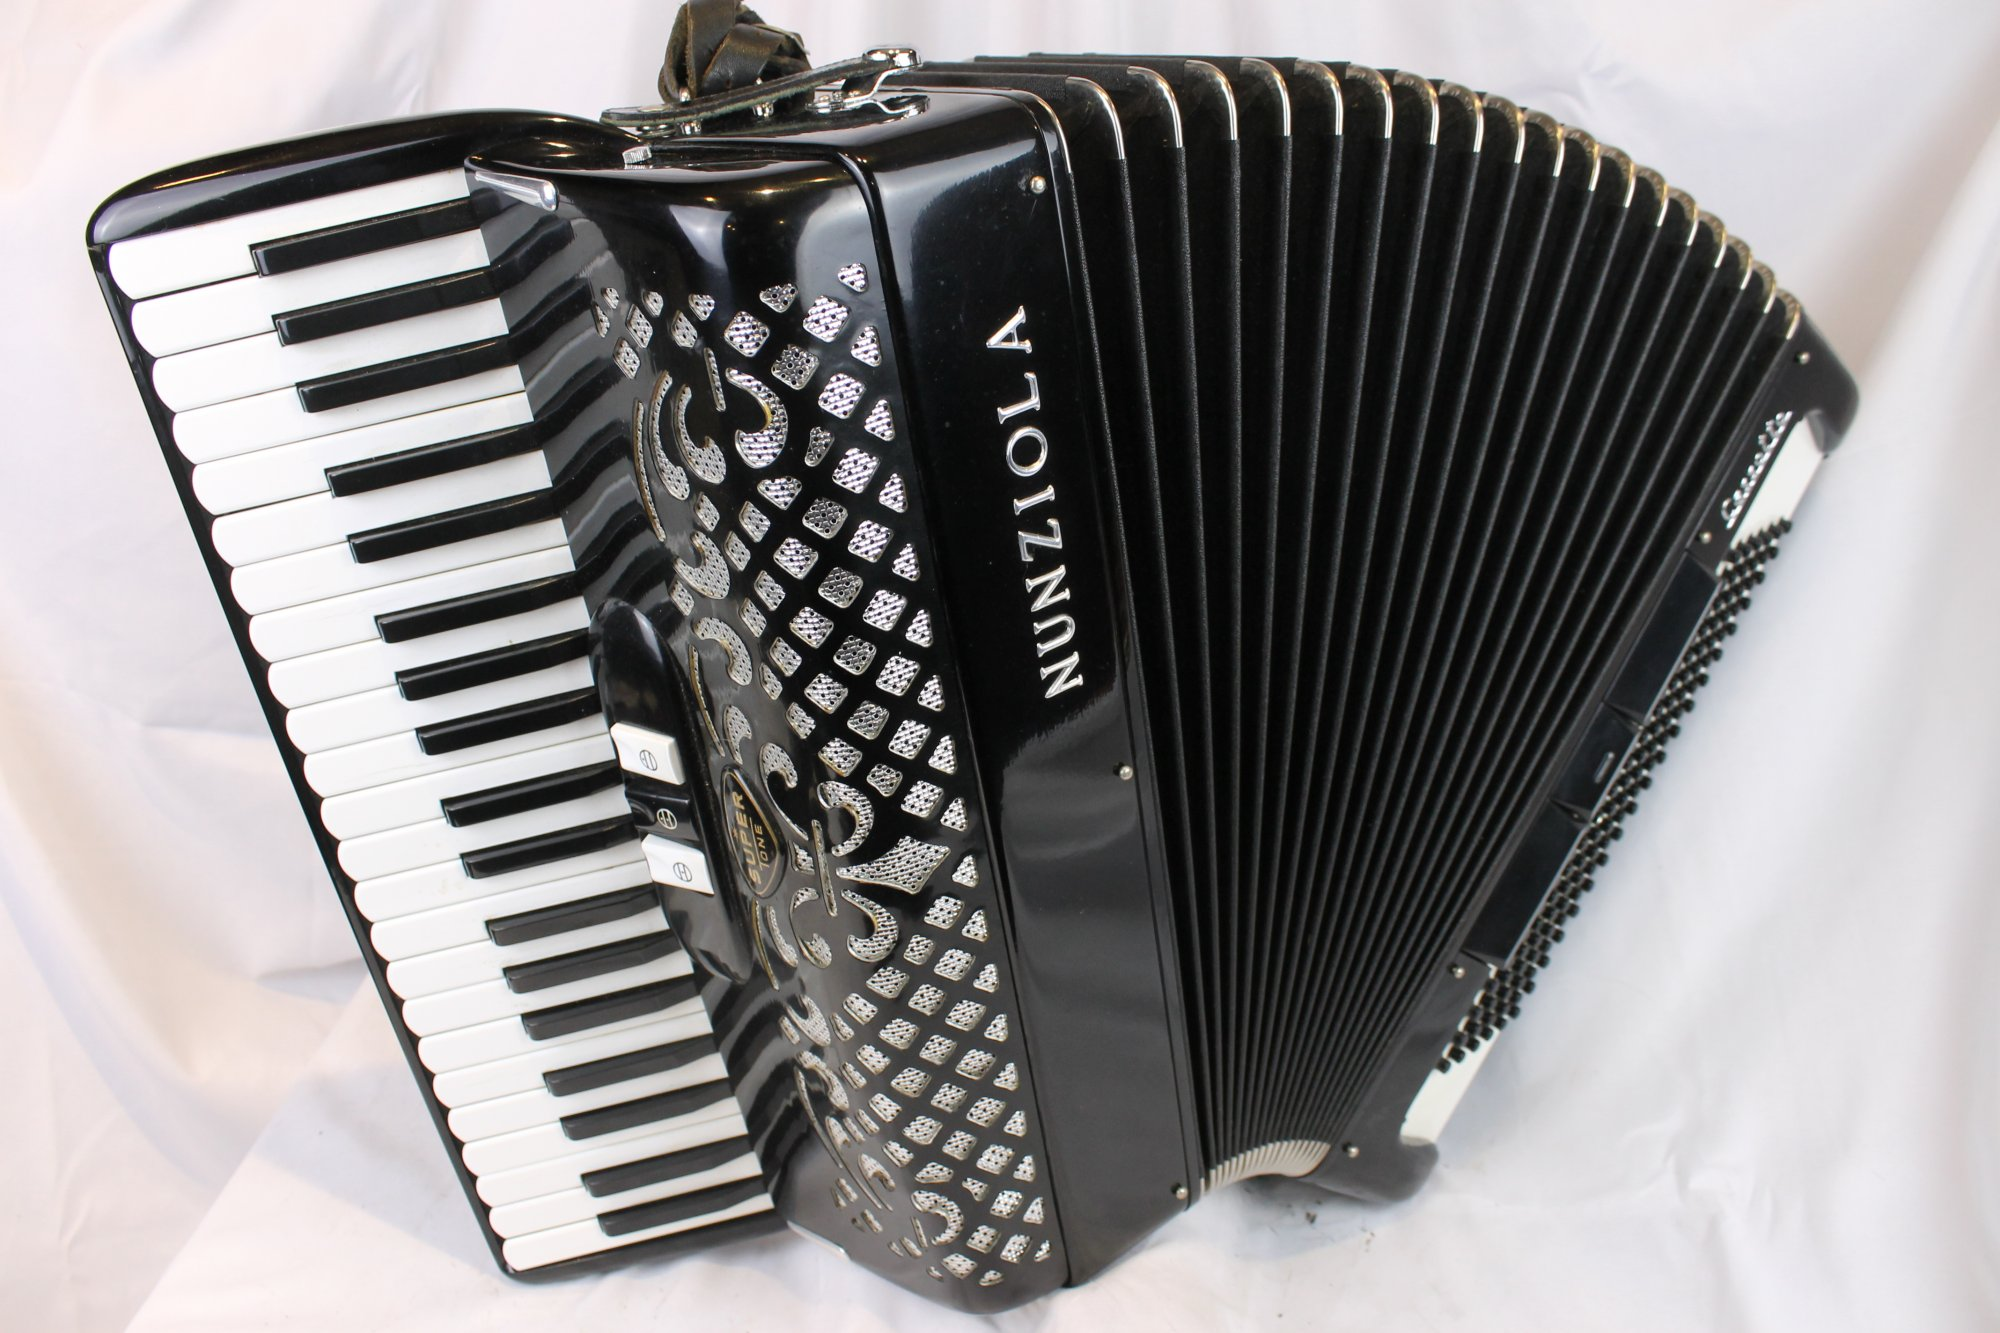 3793 - Black Nunziola Super Tone Cassotto Piano Accordion LM 41 120